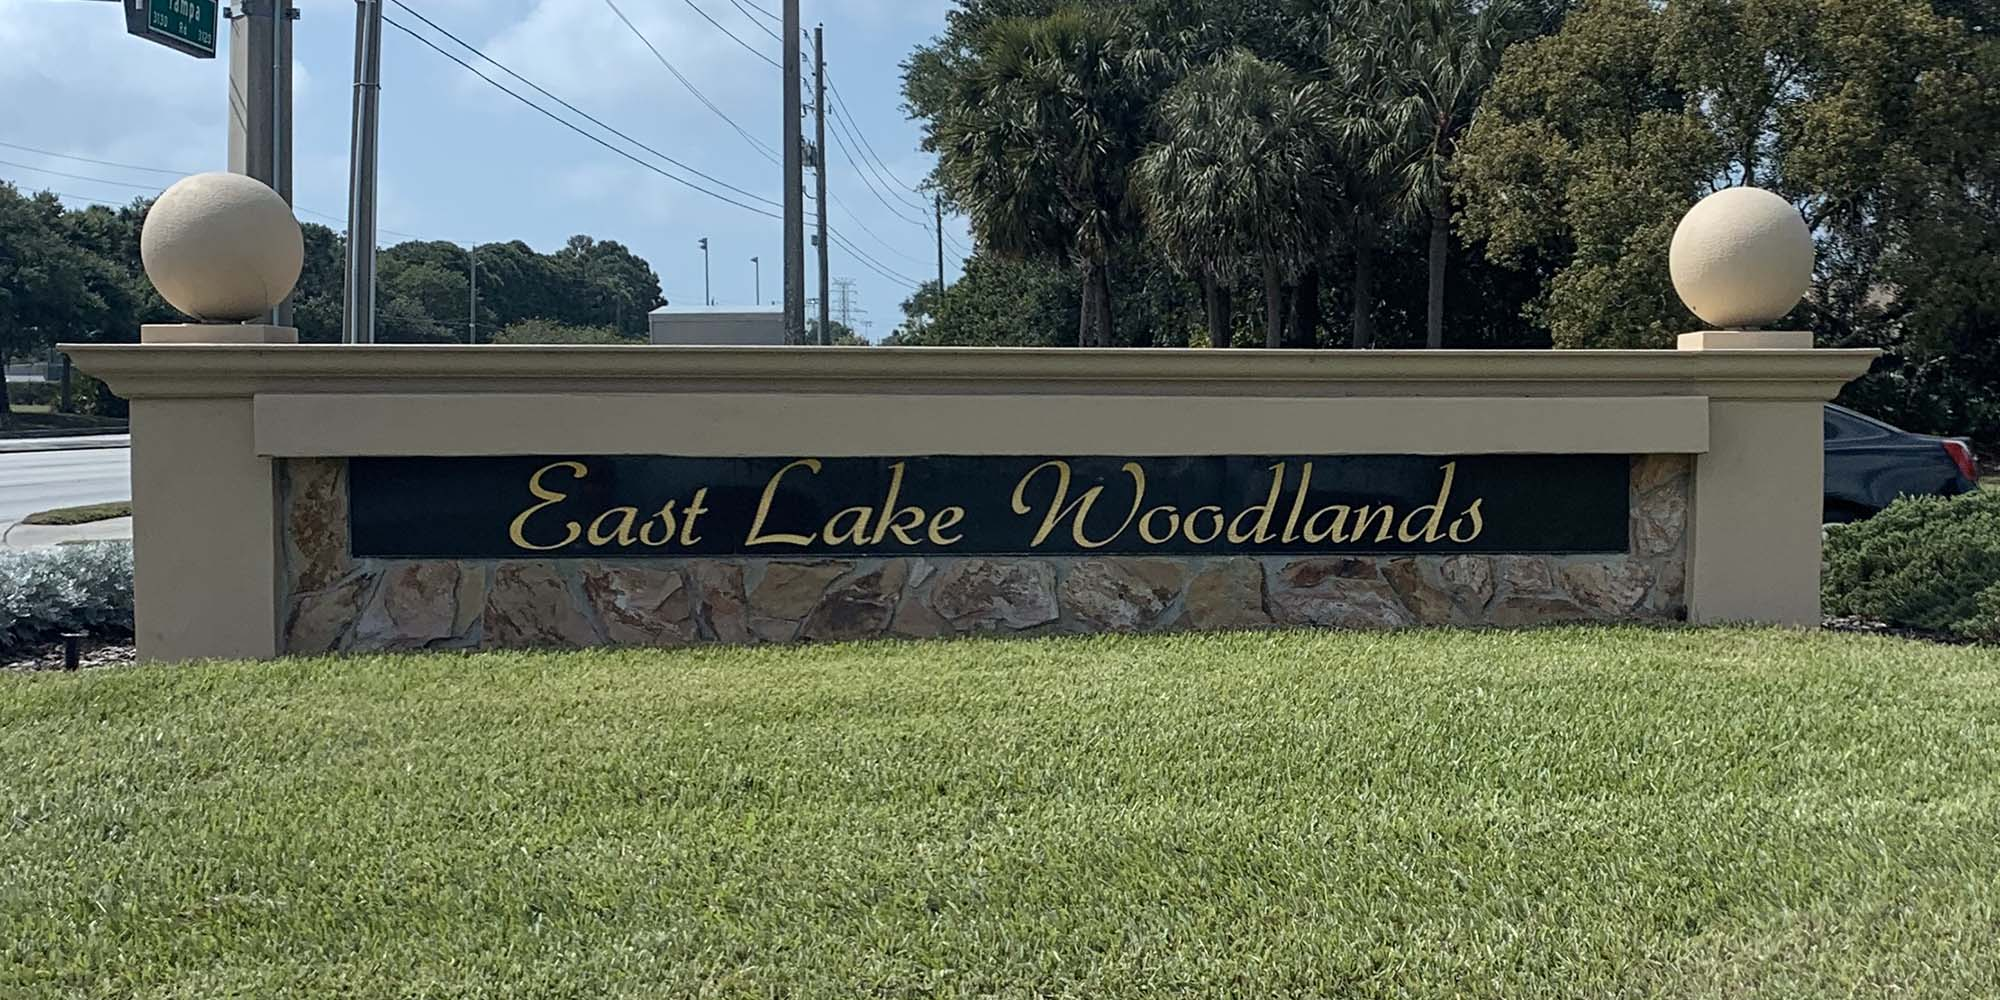 East Lake Woodlands Home Watch Services